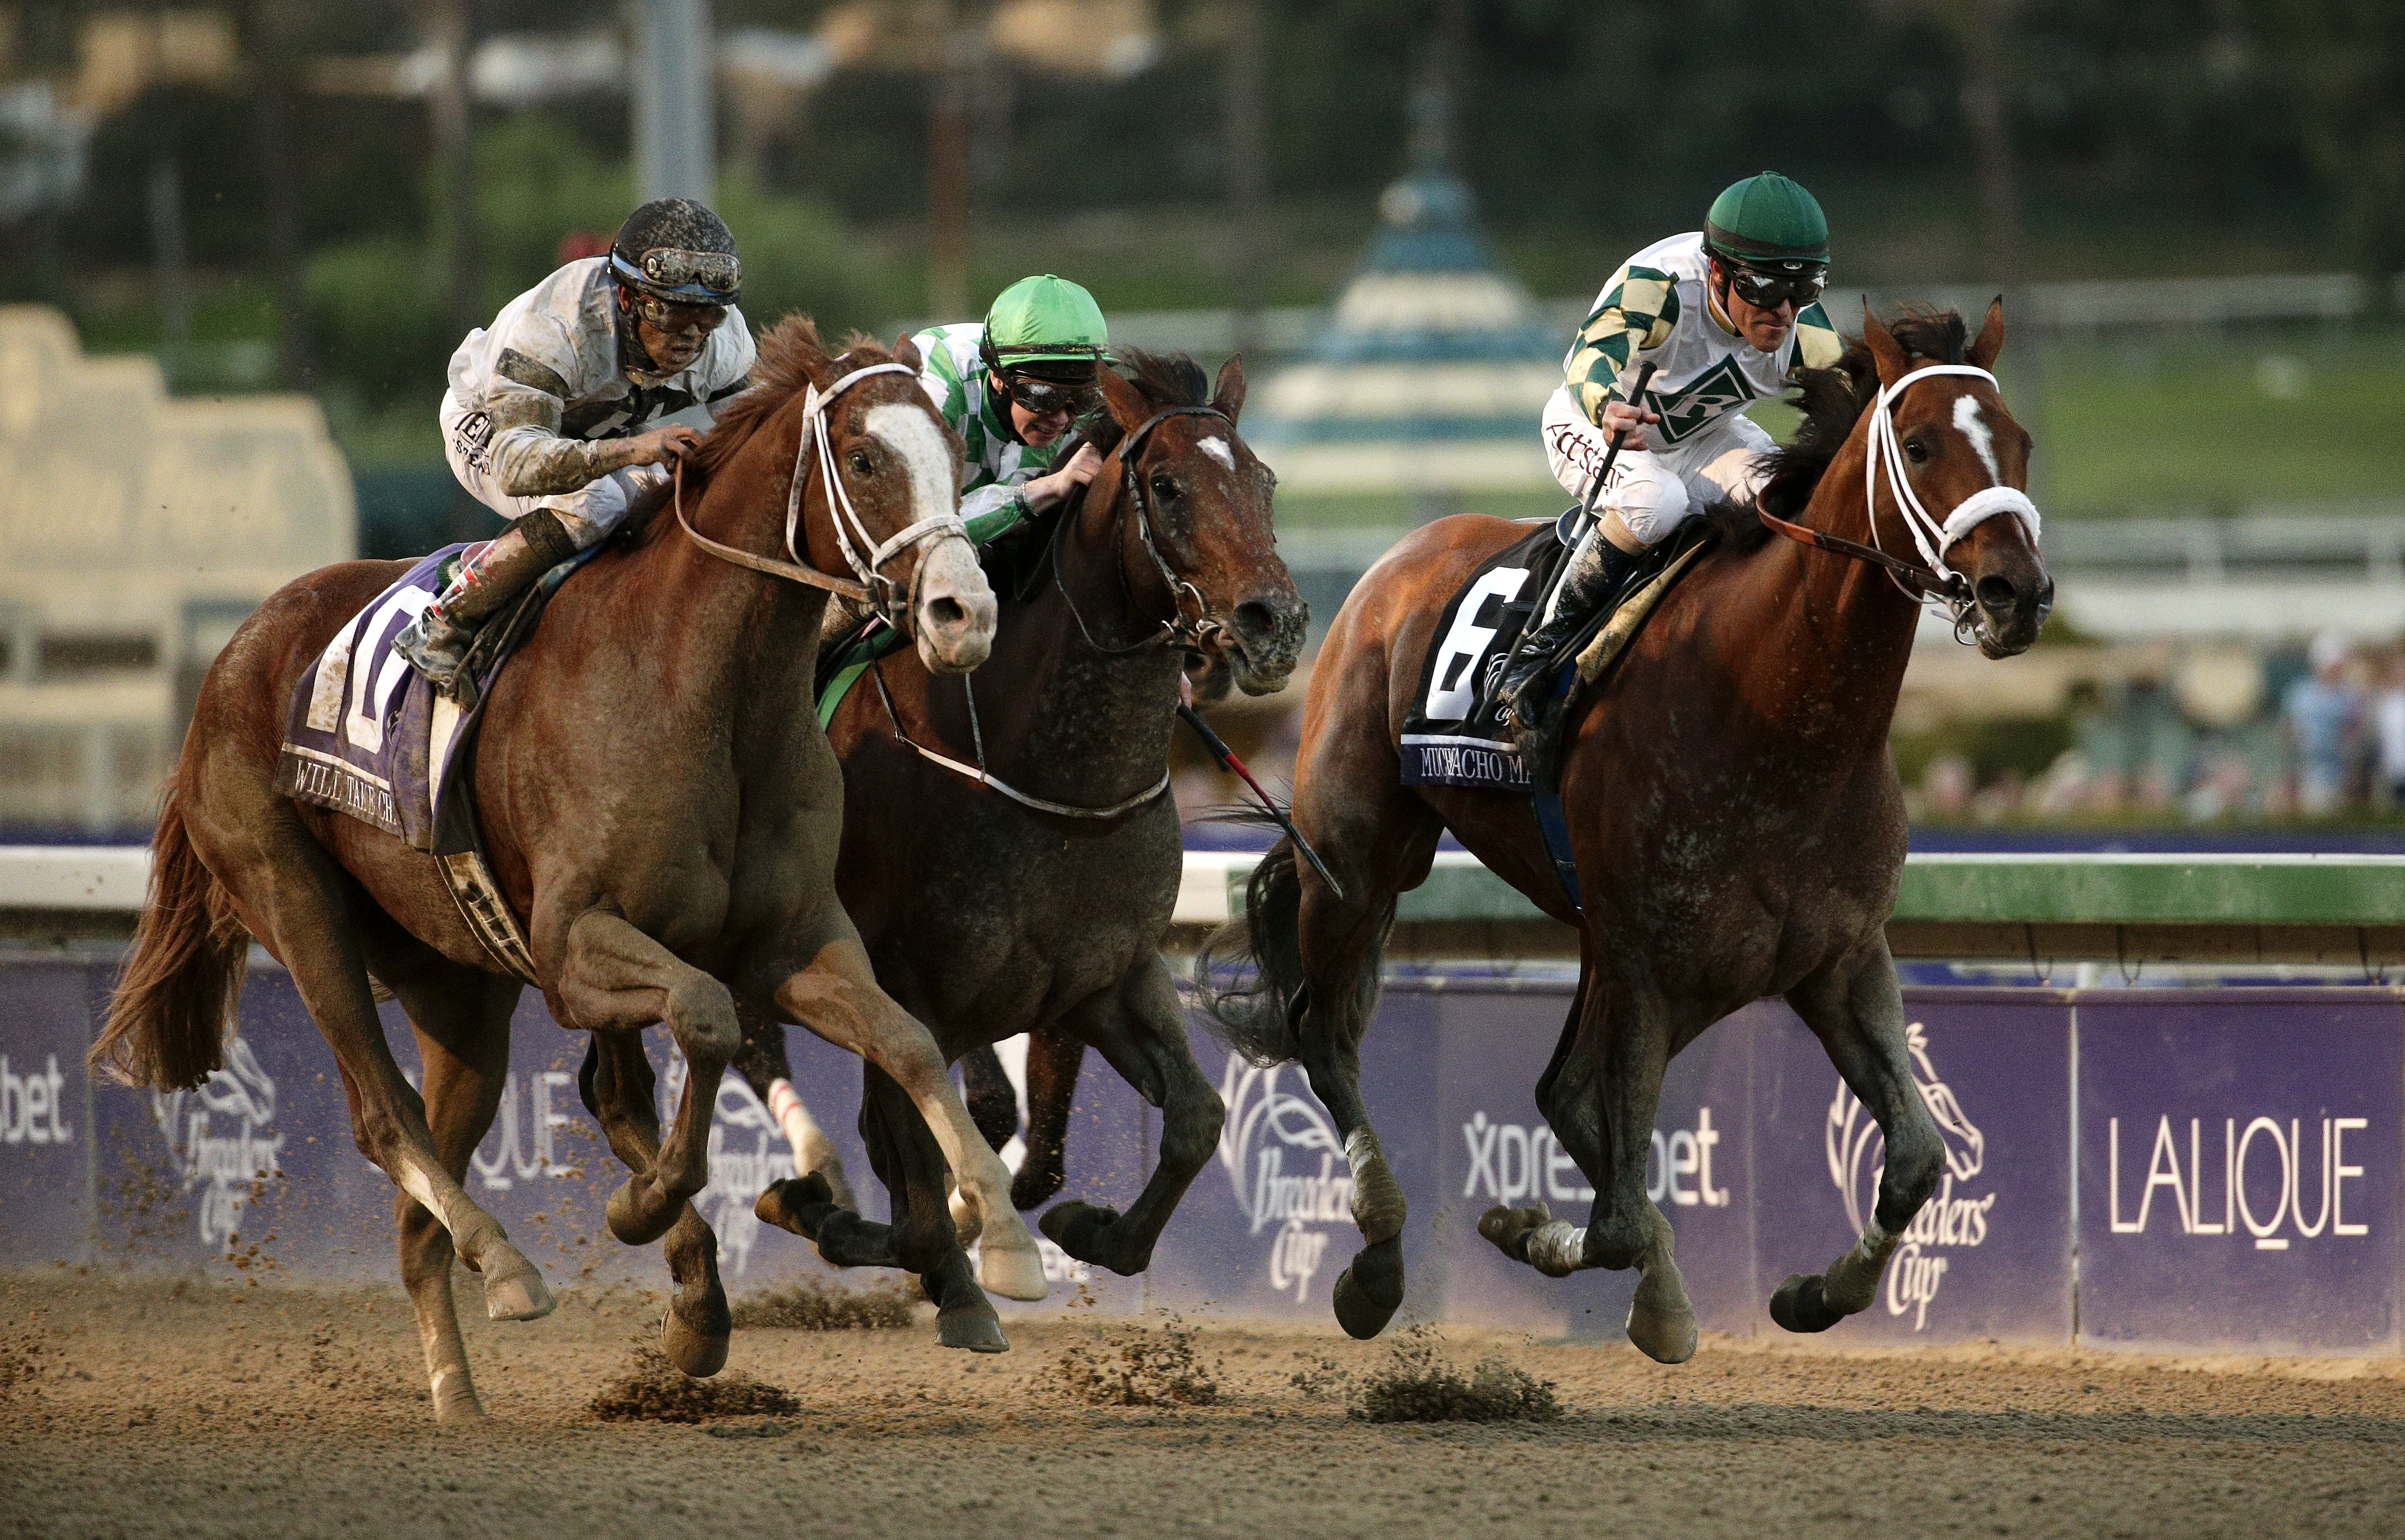 Jockey Gary Stevens, right, rides Mucho Macho Man to victory in the Breeders' Cup Classic.